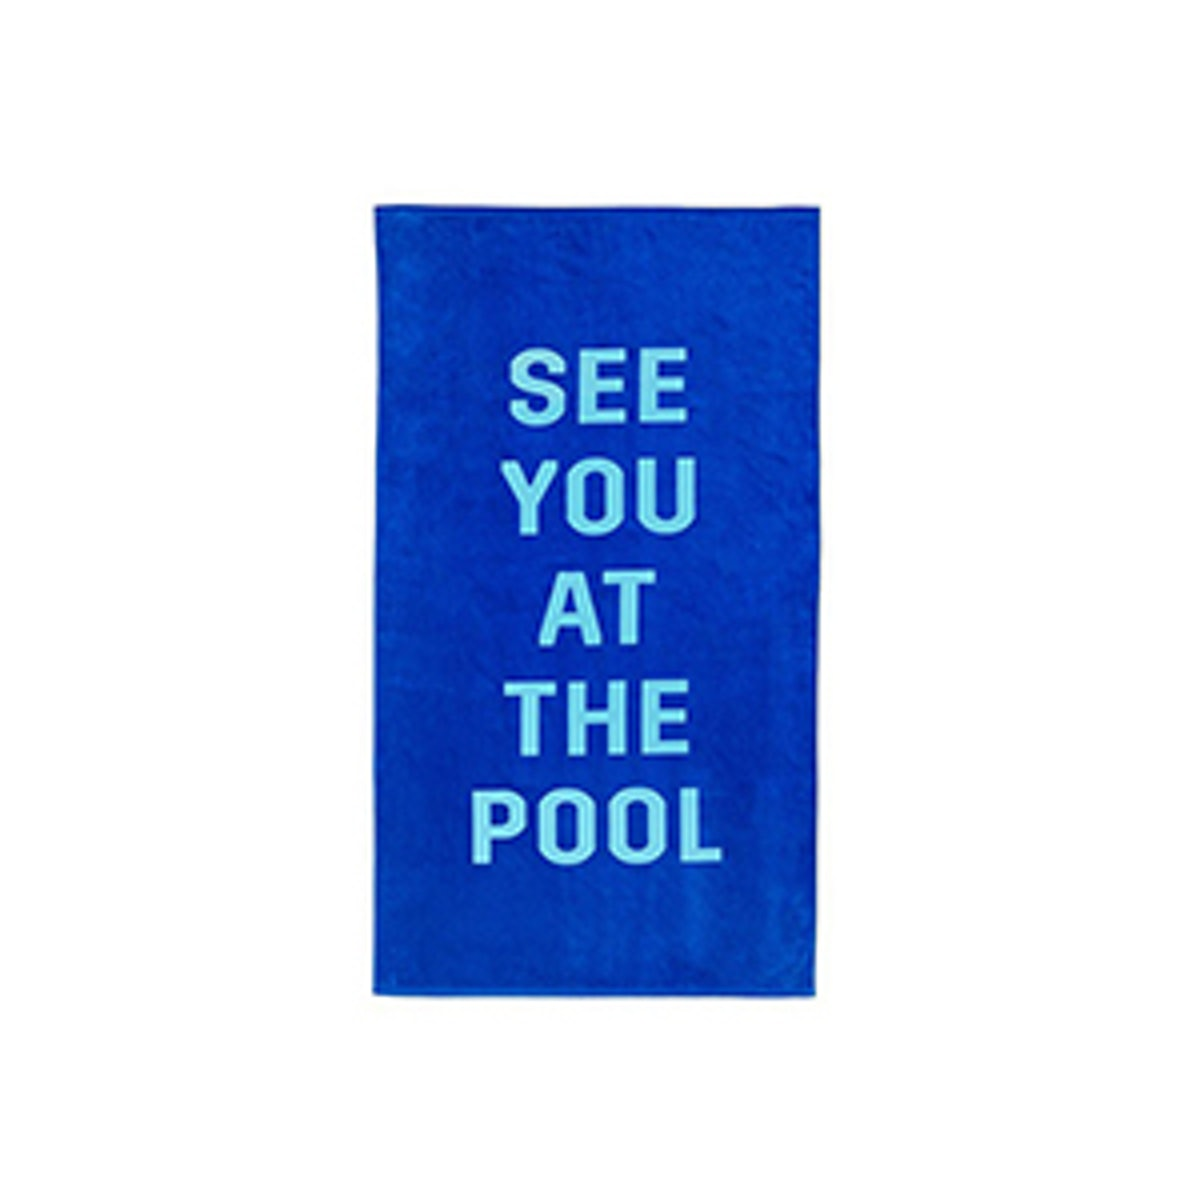 Bando Beach, Please! Giant Towel- See You At The Pool